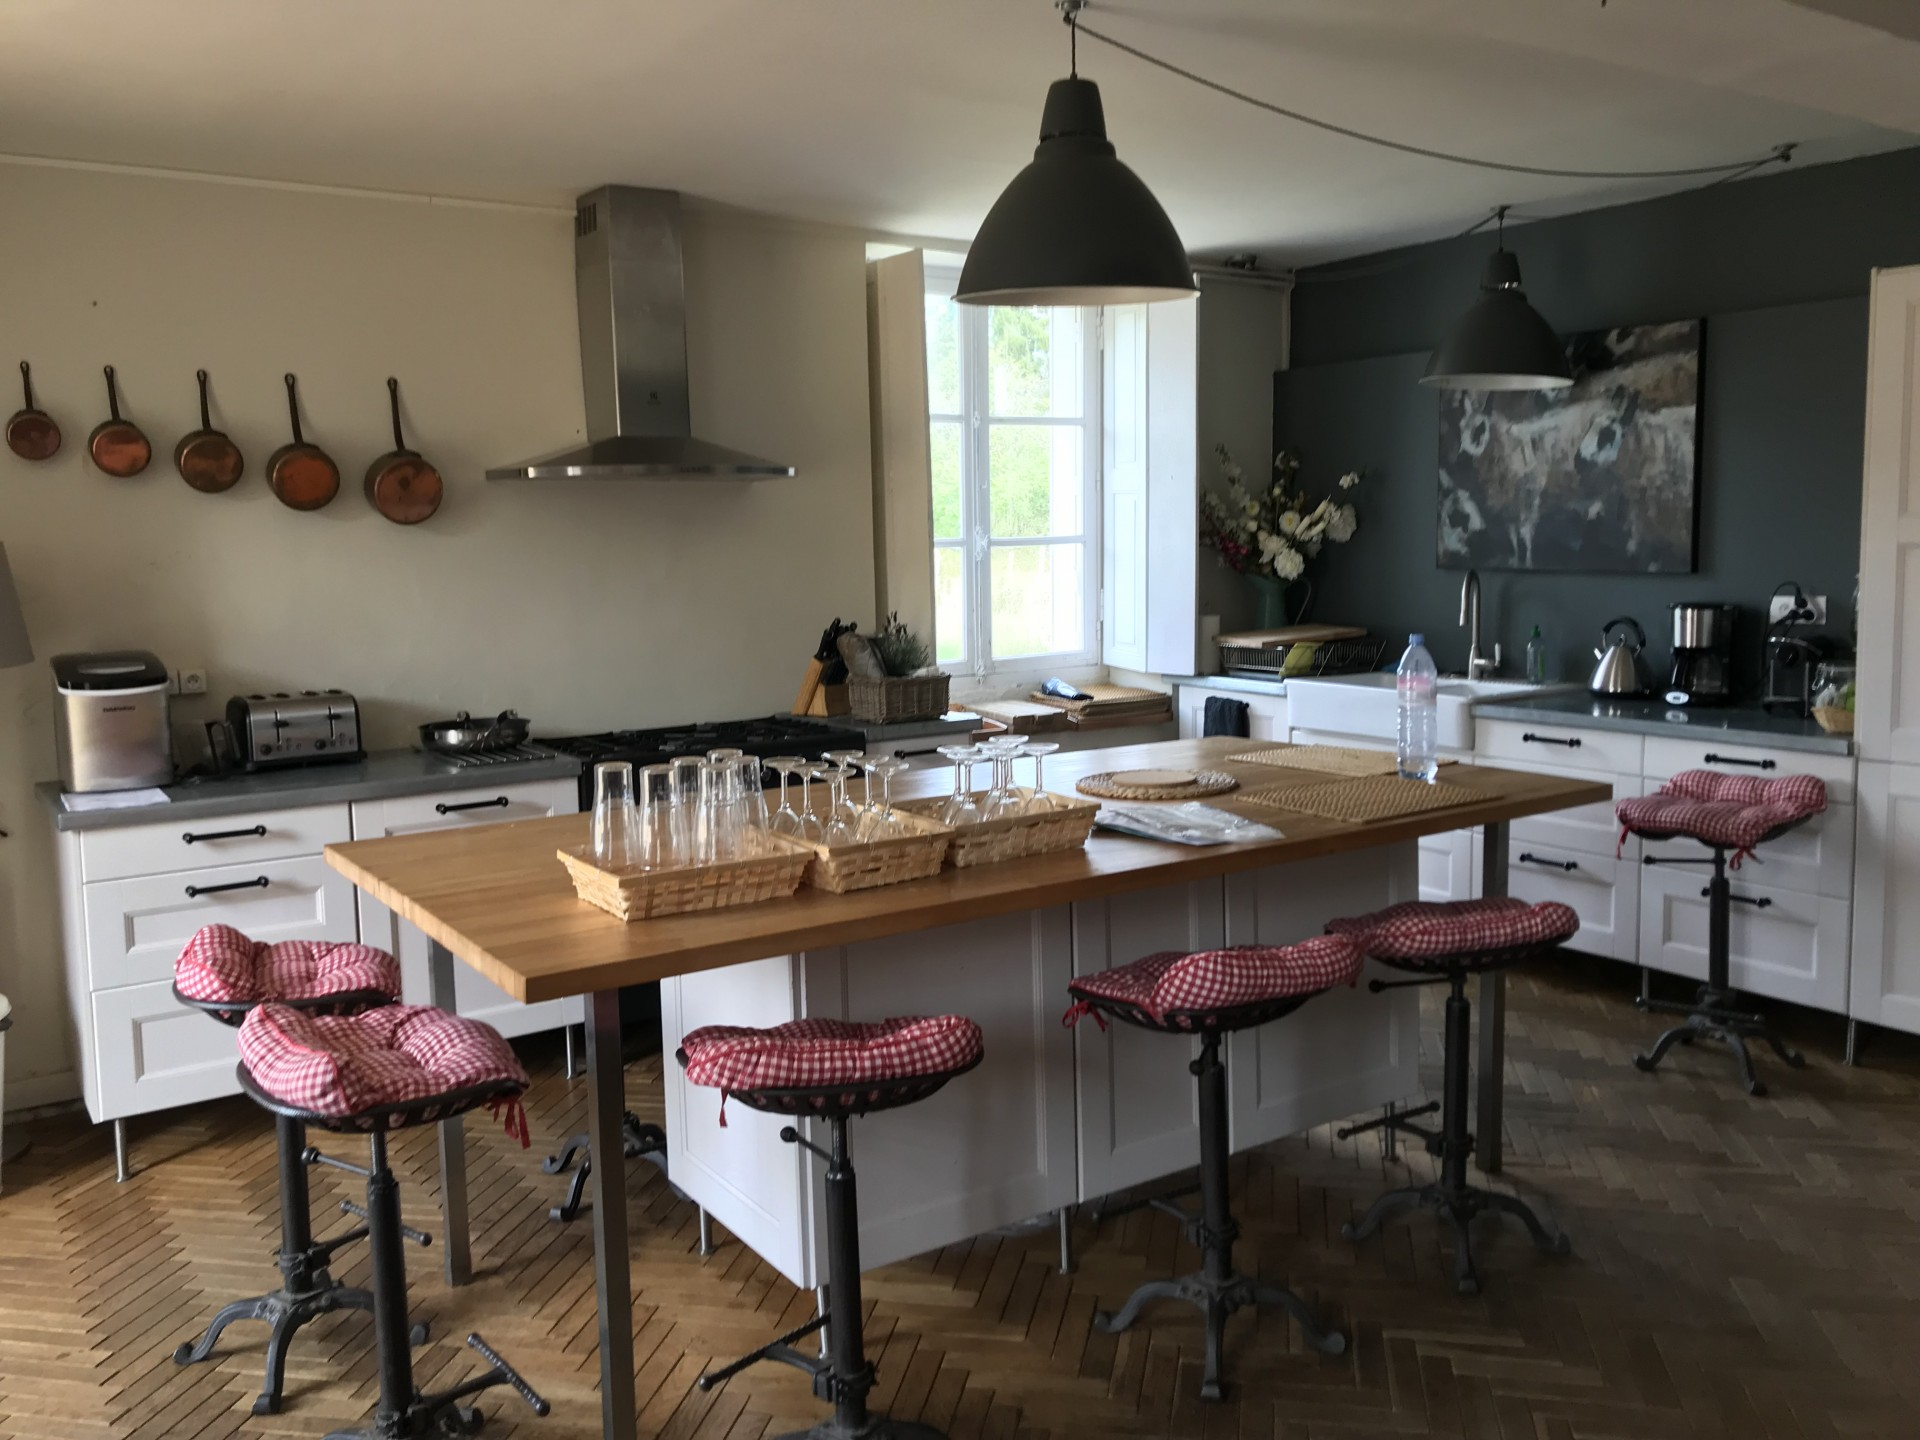 kitchen_guestshouse_24h_lemans_castel